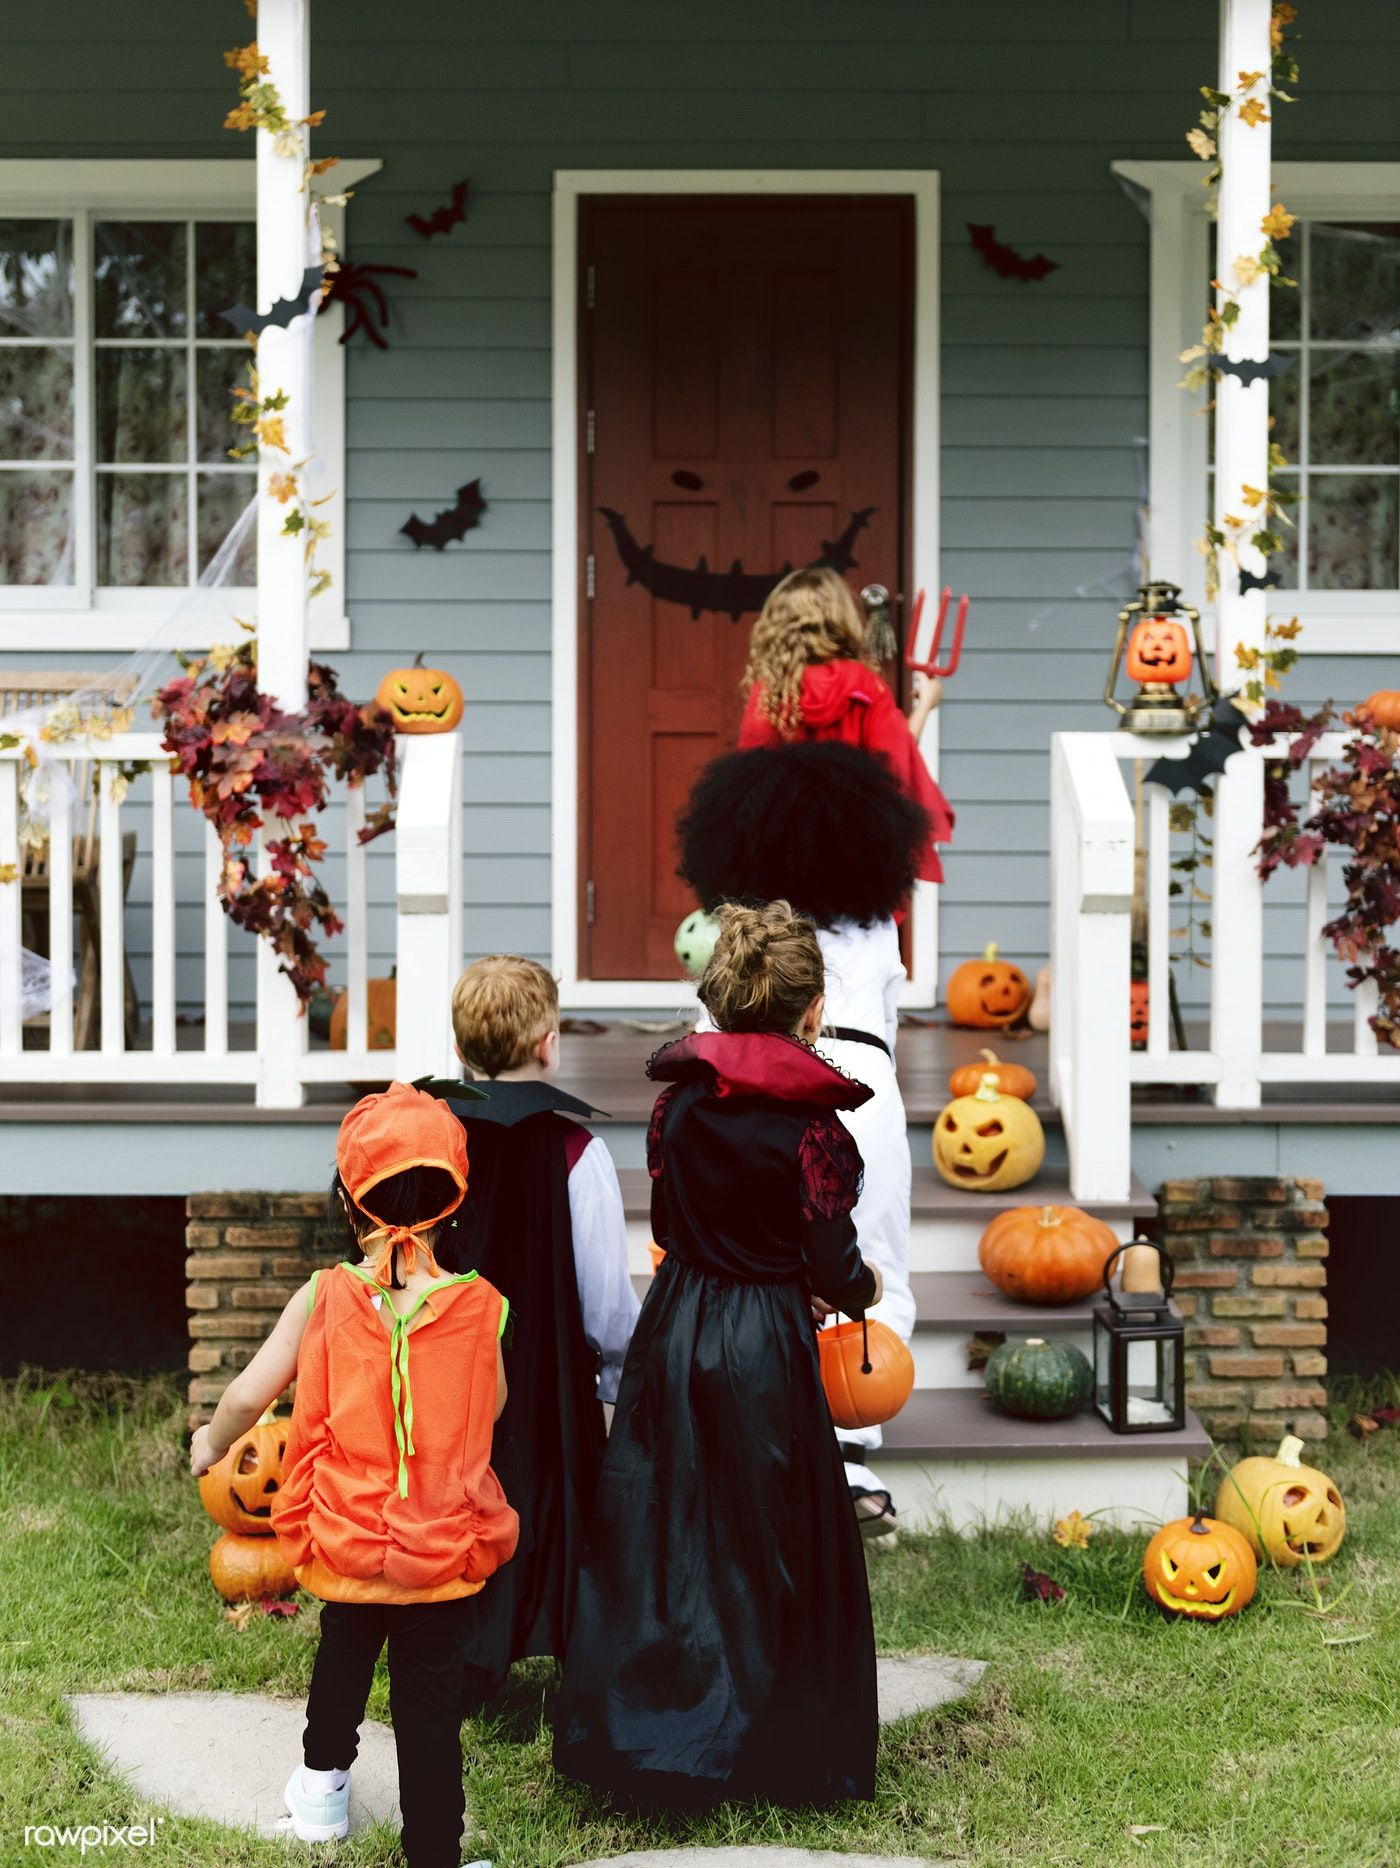 Download premium image of Little children trick or